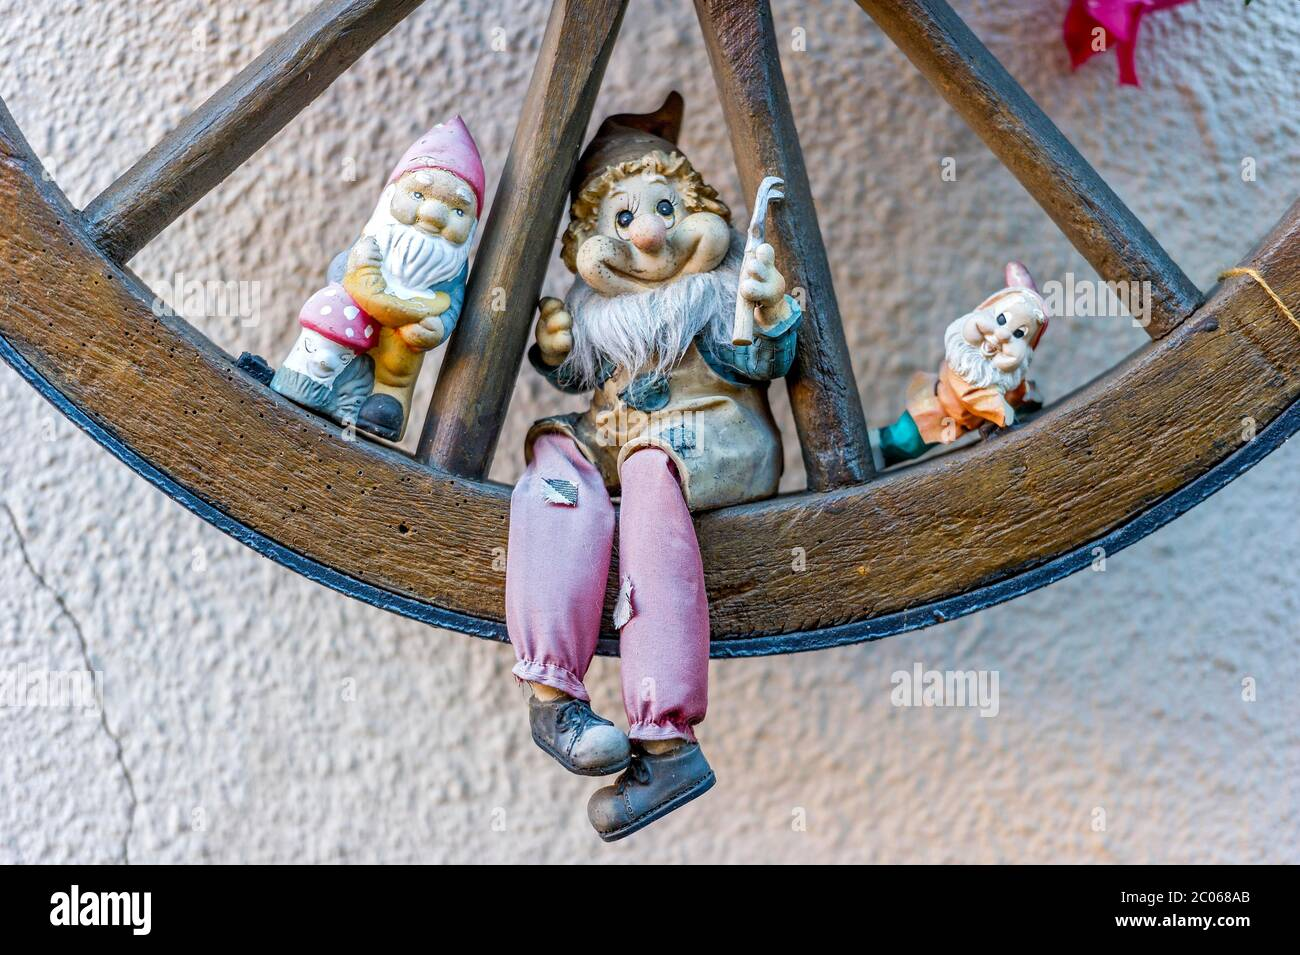 Garden Gnomes In Wooden Wagon Wheel Steinau An Der Strasse Hesse Germany Stock Photo Alamy